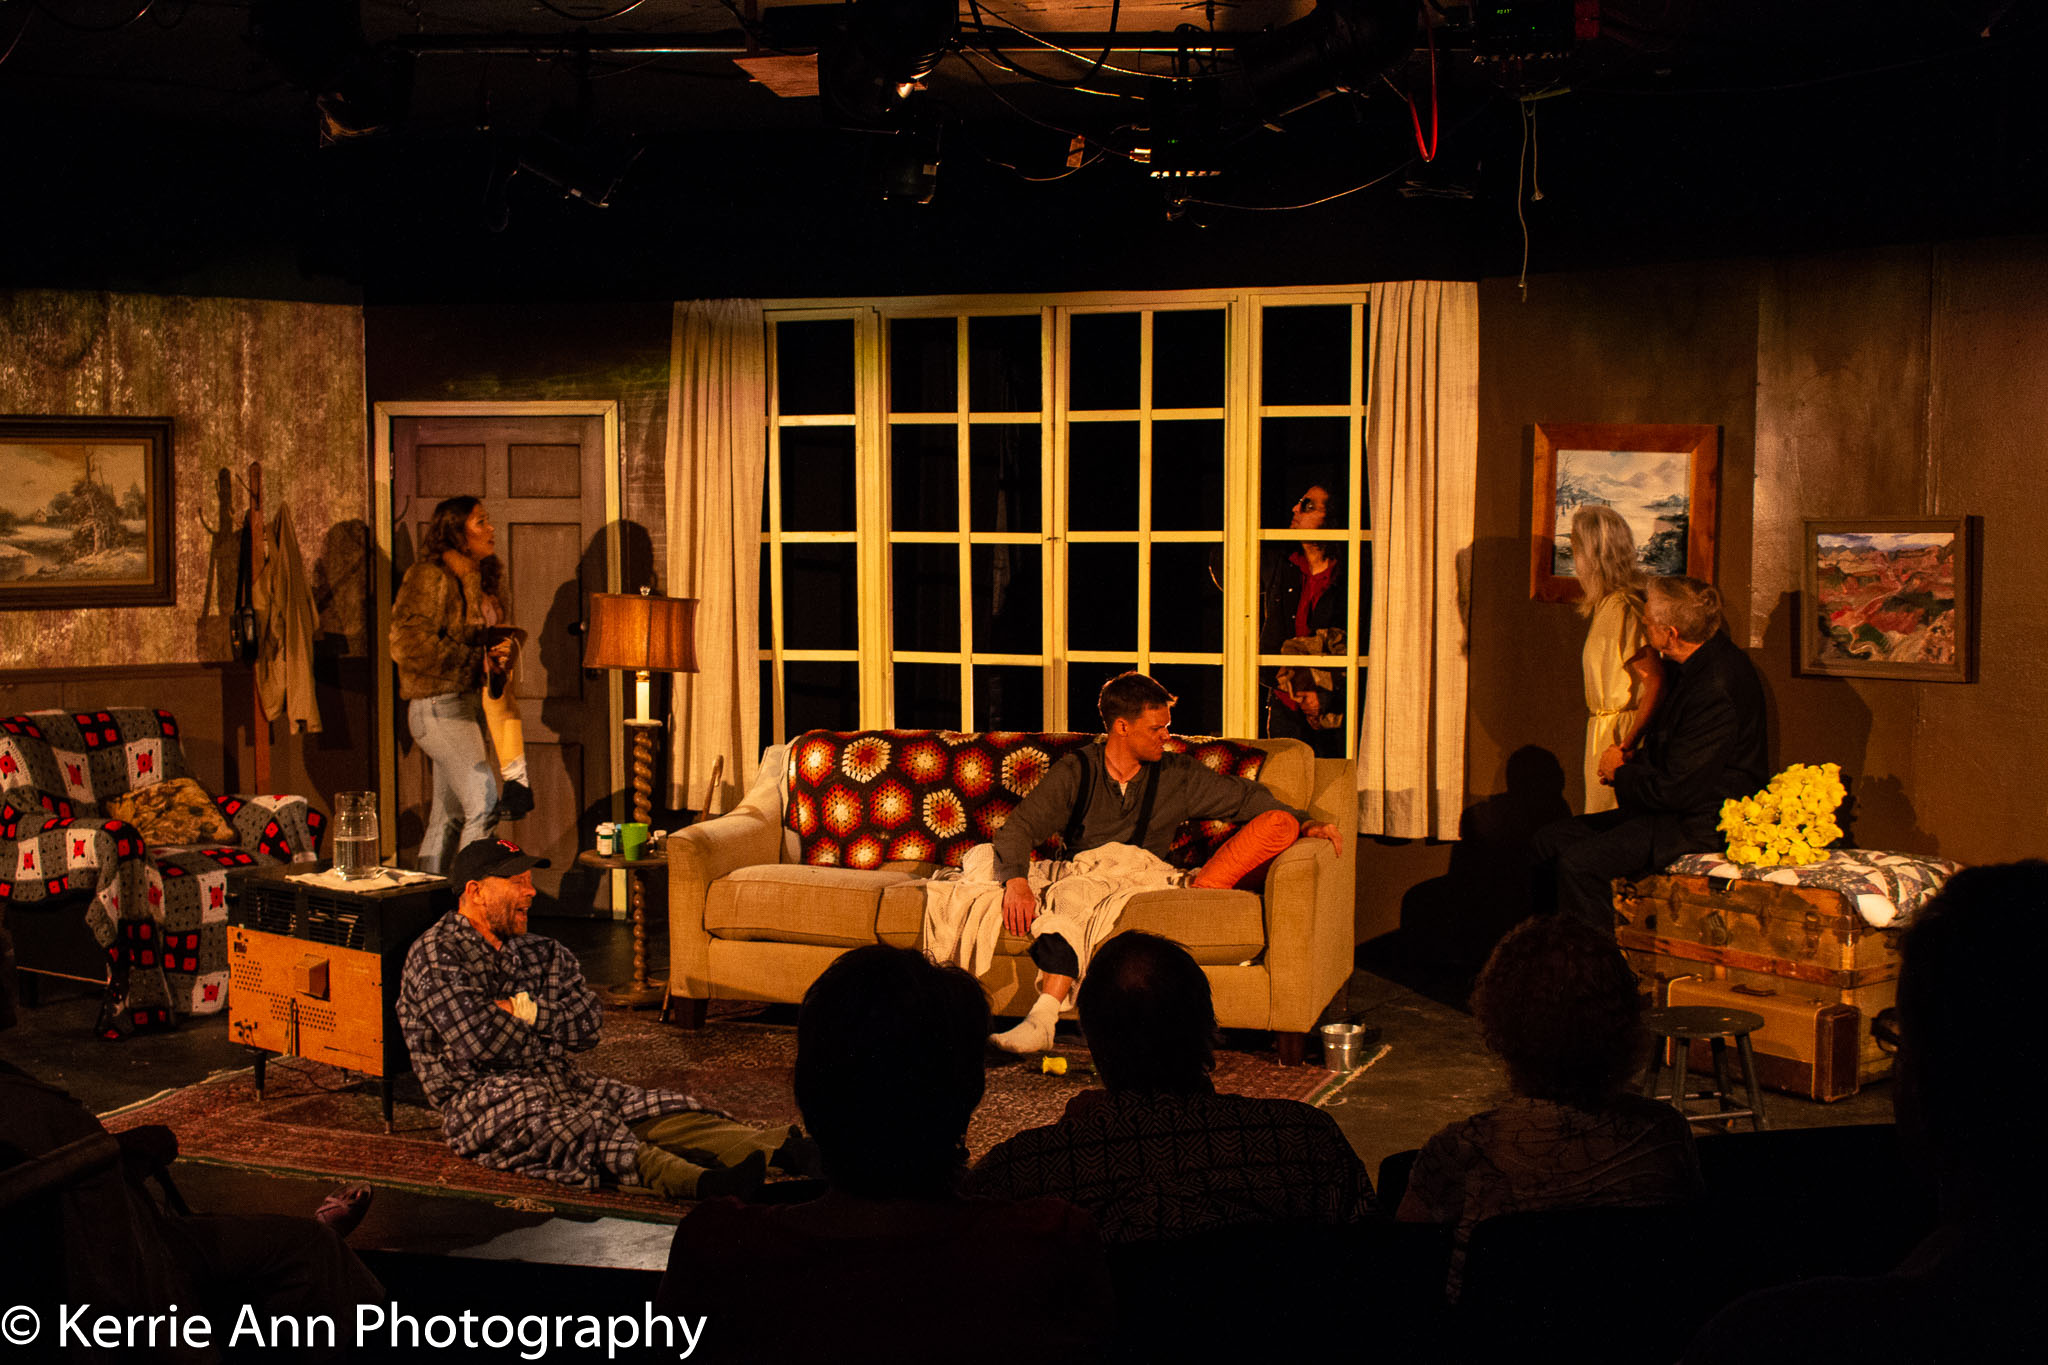 Scene from Buried Child